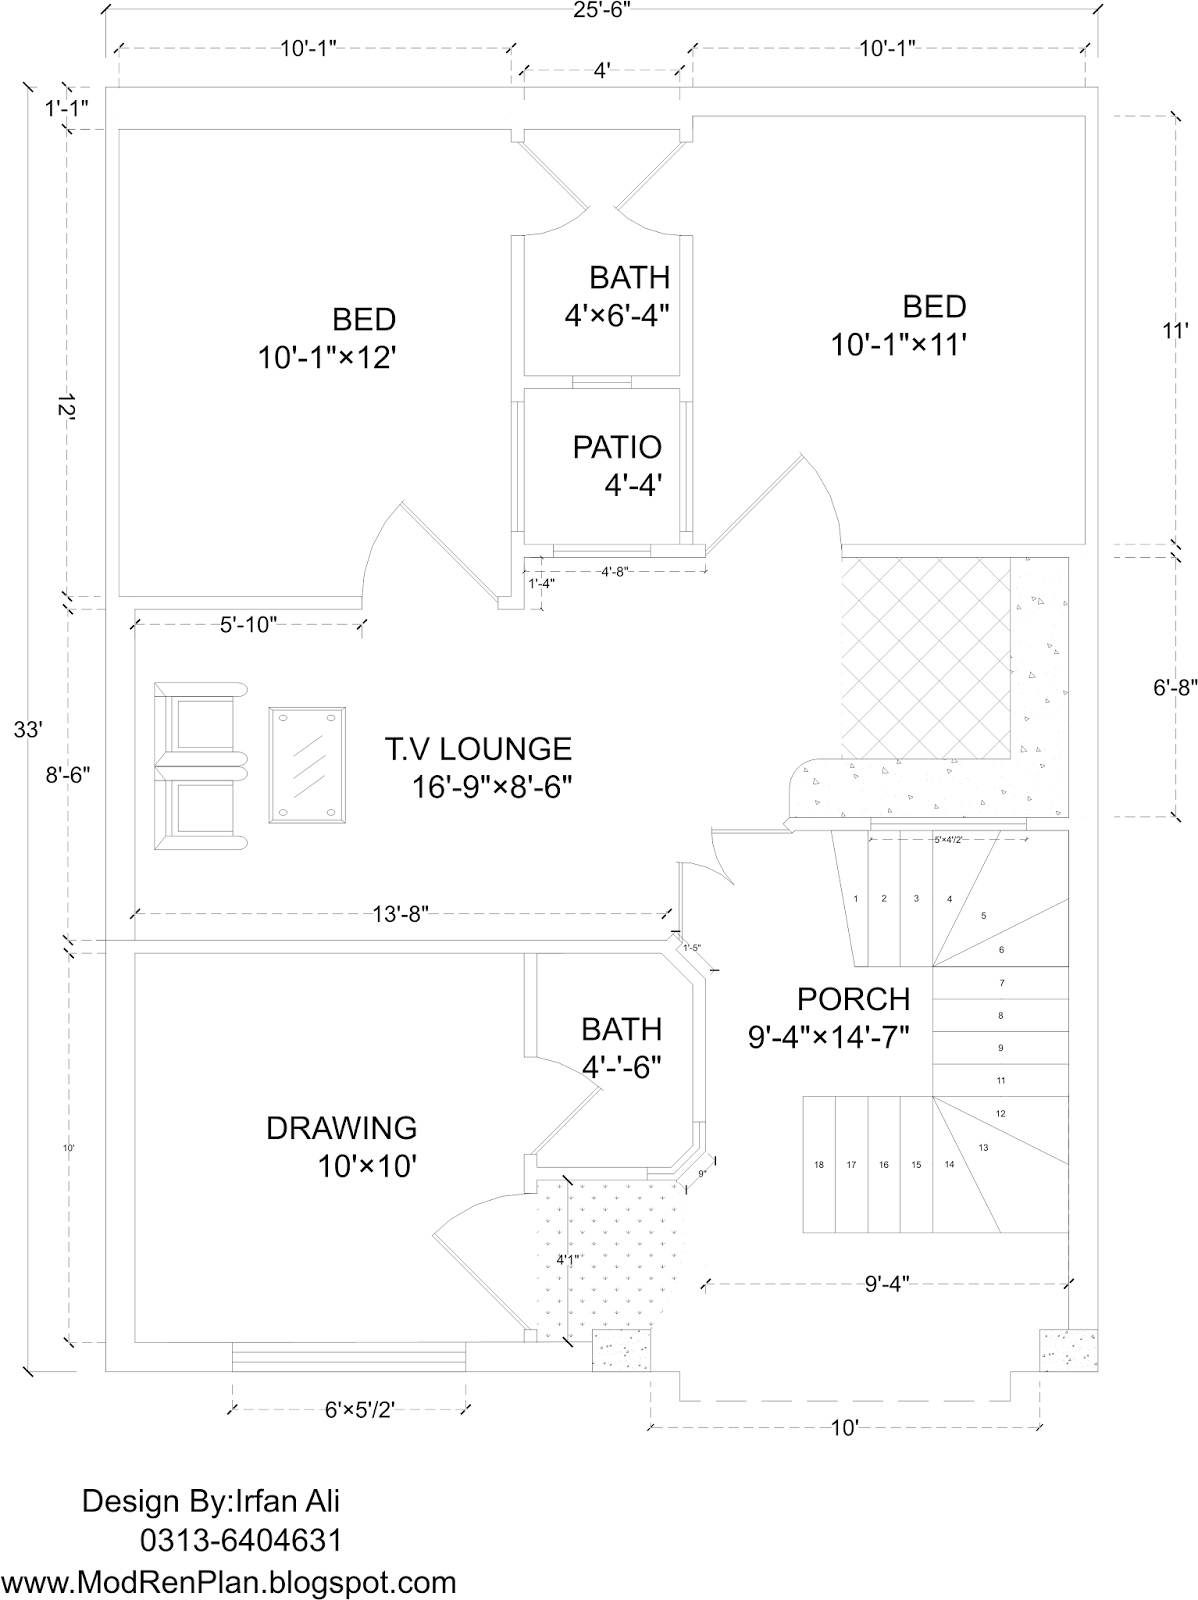 5 marla house plan and map with detail 25x33 house plan House map drawing